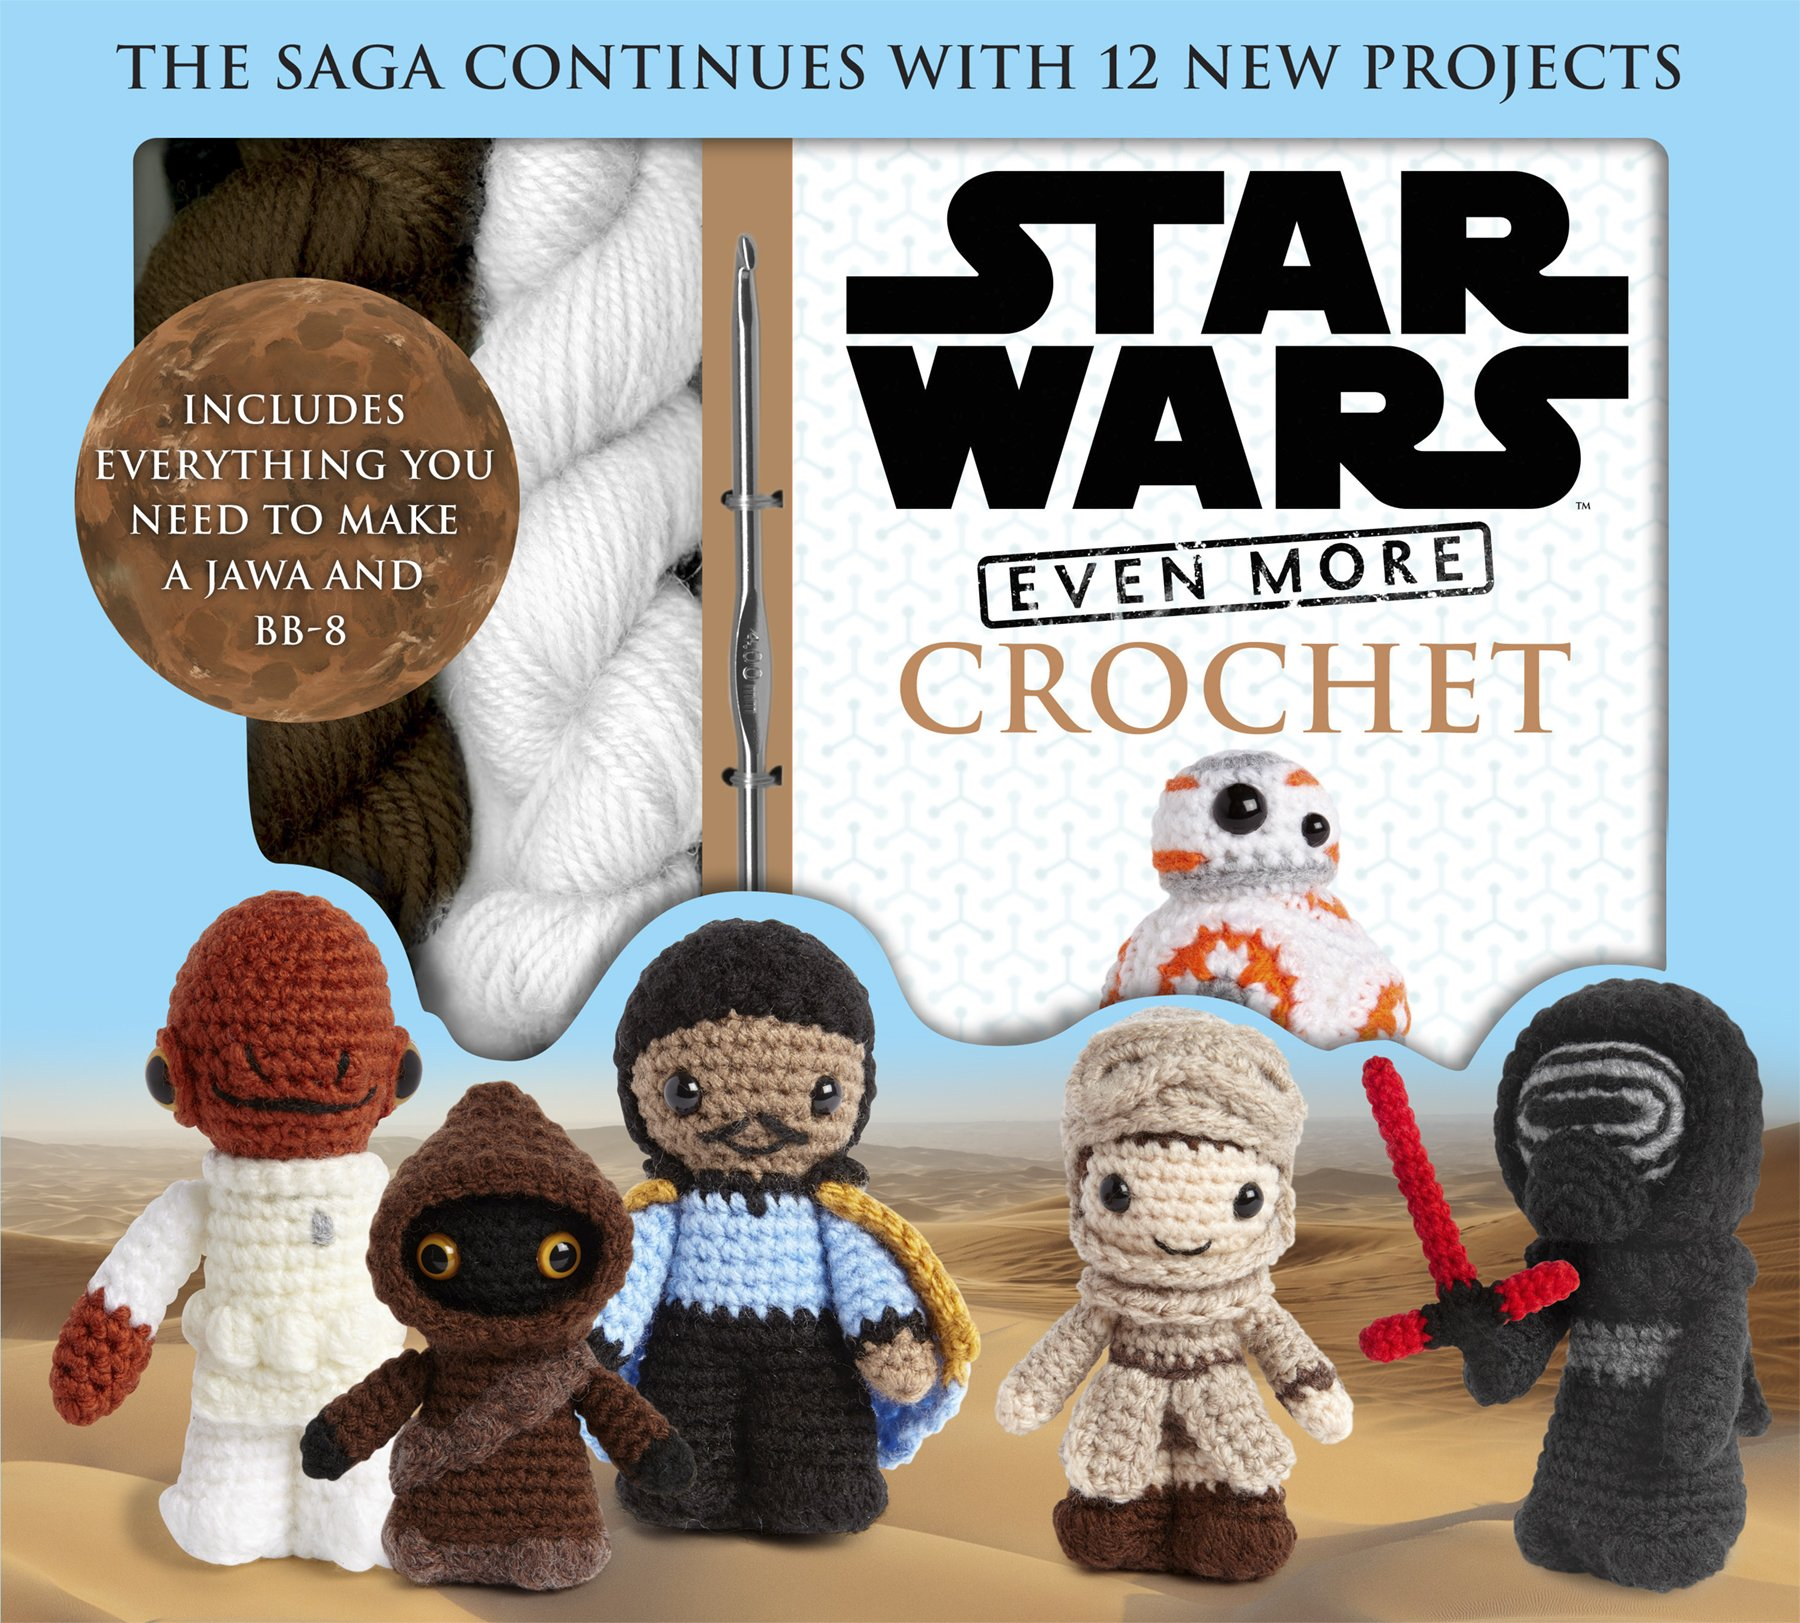 Even More Star Wars Crochet Pack (Star Wars Craft): Amazon.es: Collin, Lucy: Libros en idiomas extranjeros